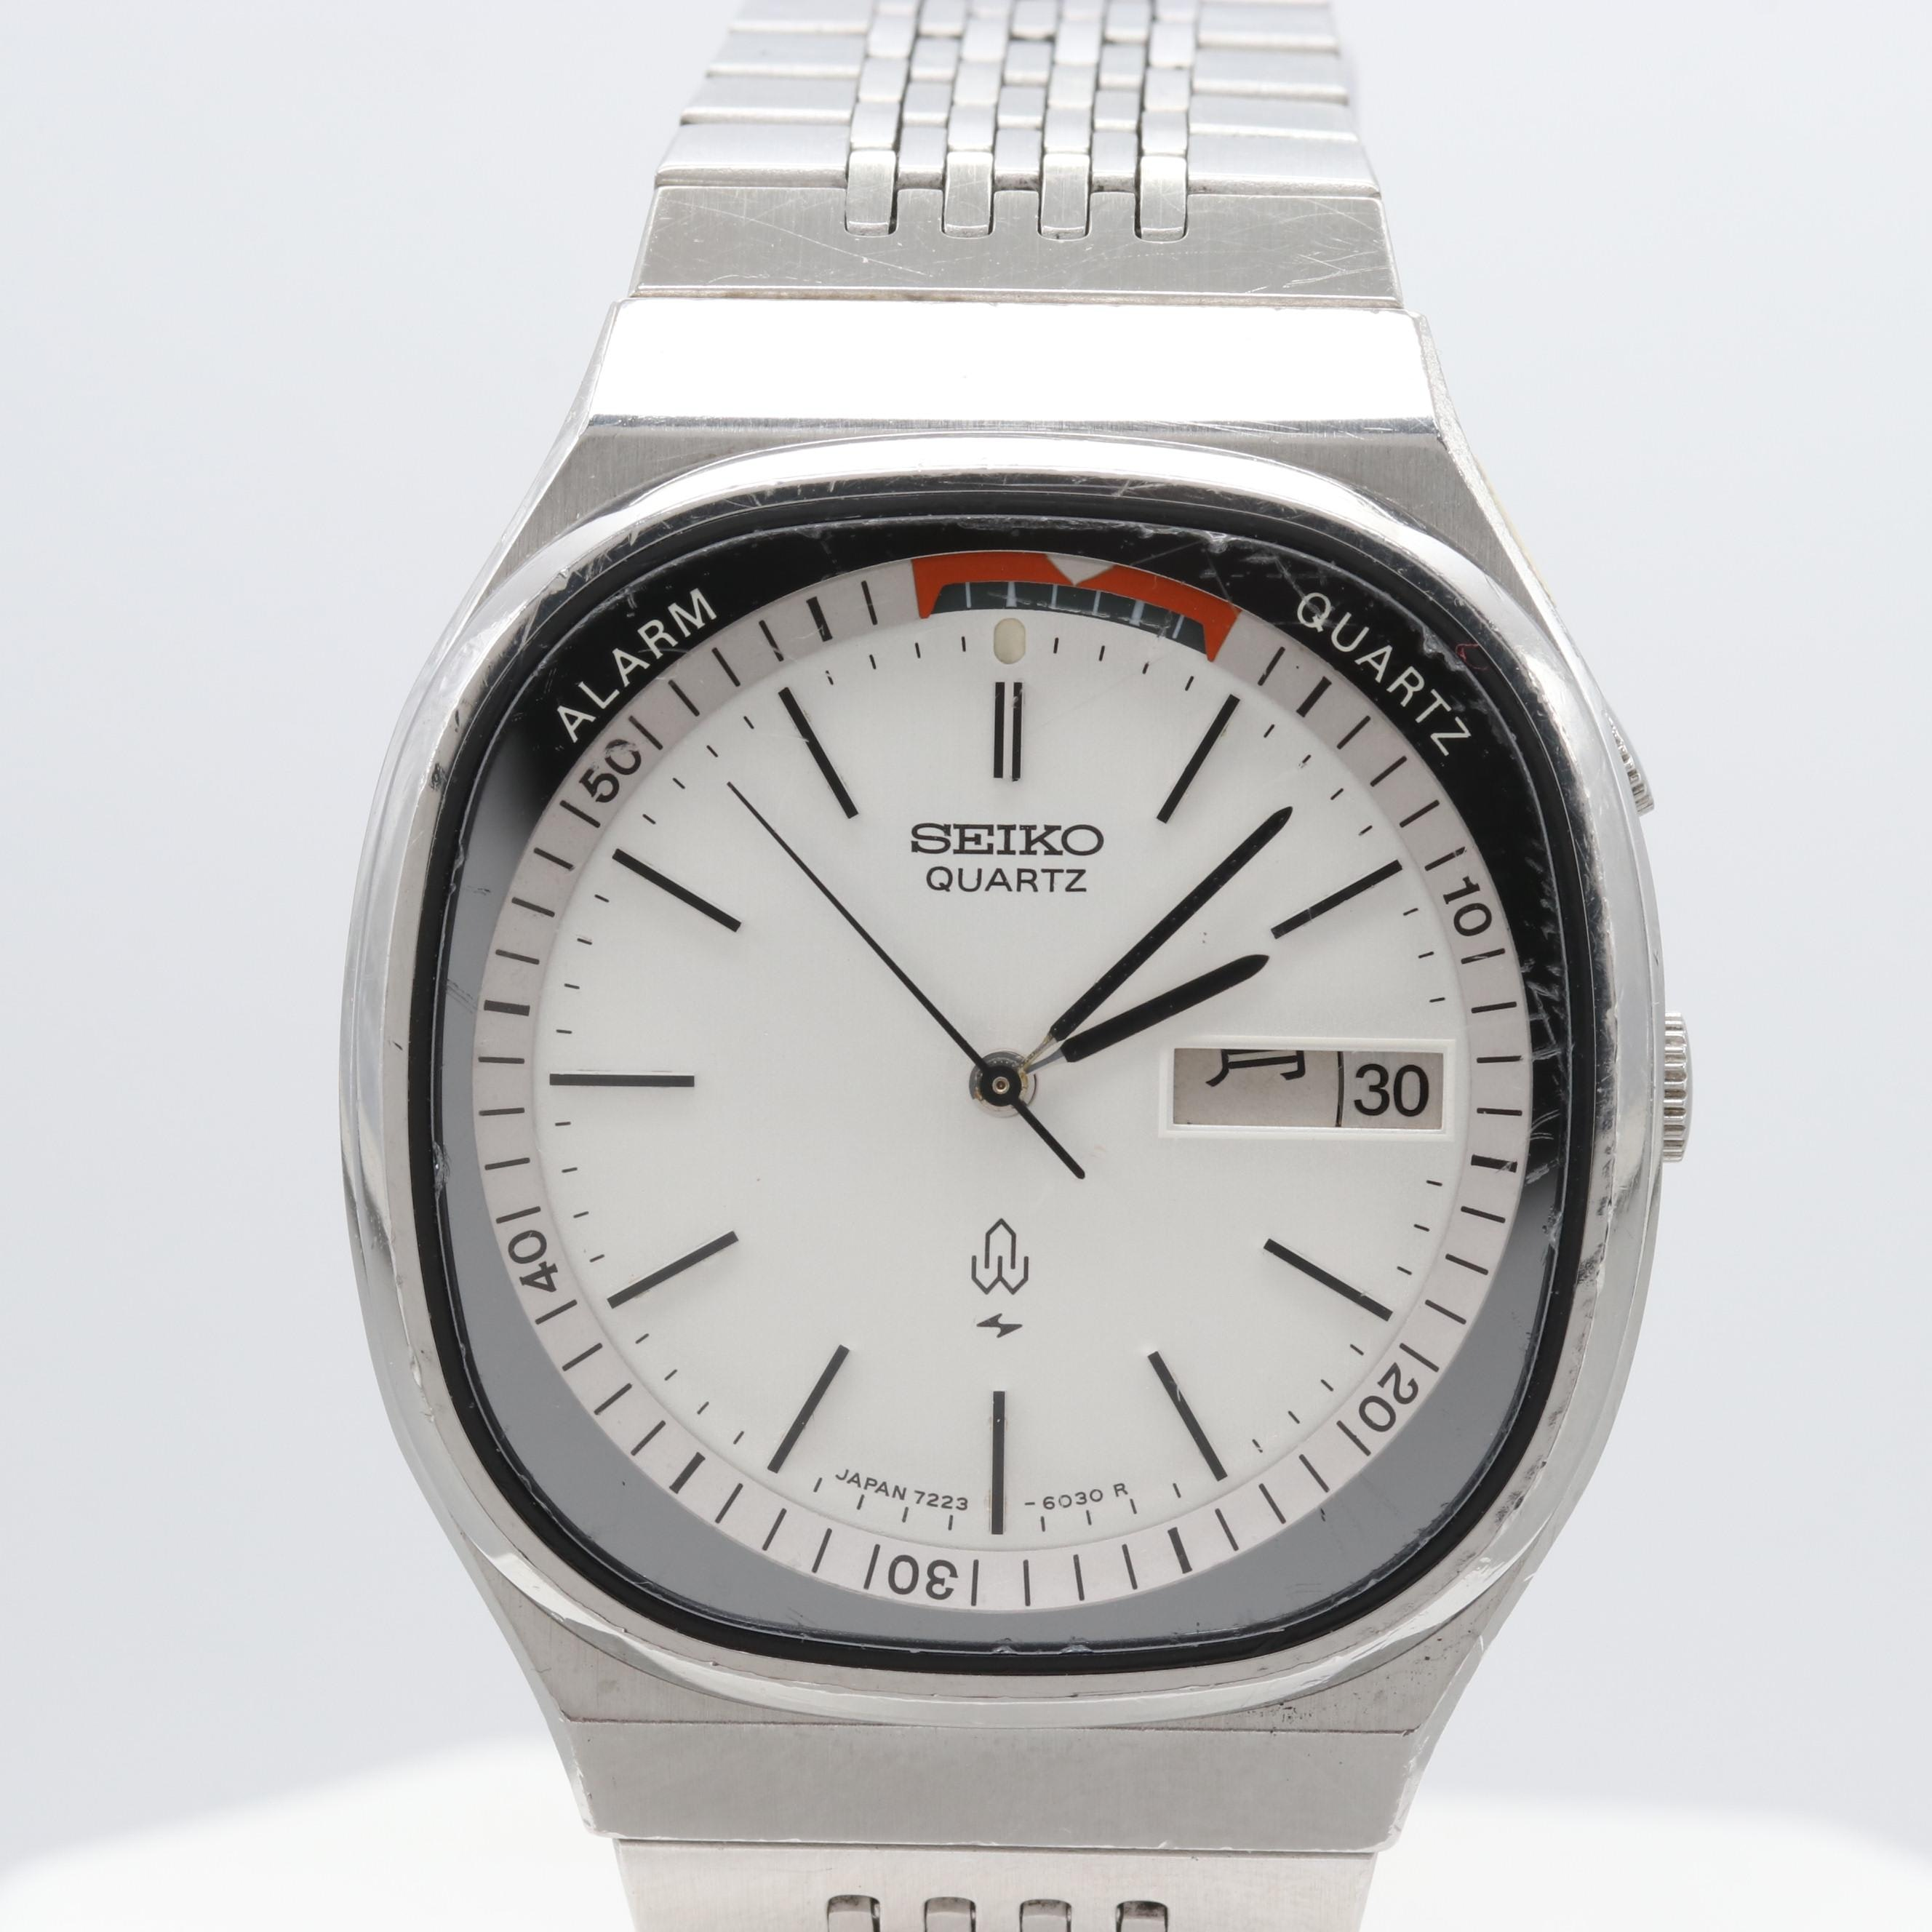 Seiko Stainless Steel Alarm Quartz Wristwatch With Day/Date Window